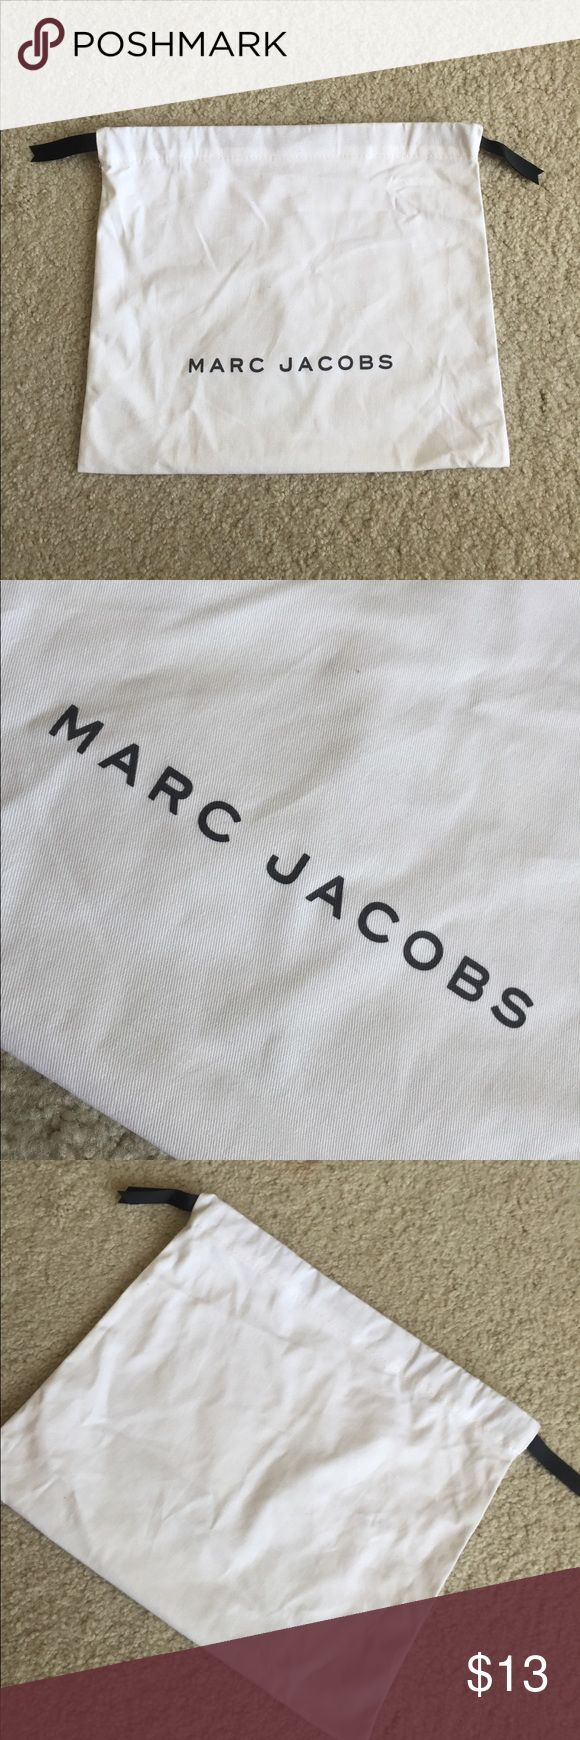 """Marc Jacobs dust bag Never used new. I use my Marc Jacobs purse all the time, dont need to put in dust bag. 13.5*11.5"""". For small sized bag. From authentic Marc Jacobs purse purchase. No trades Marc Jacobs Bags"""